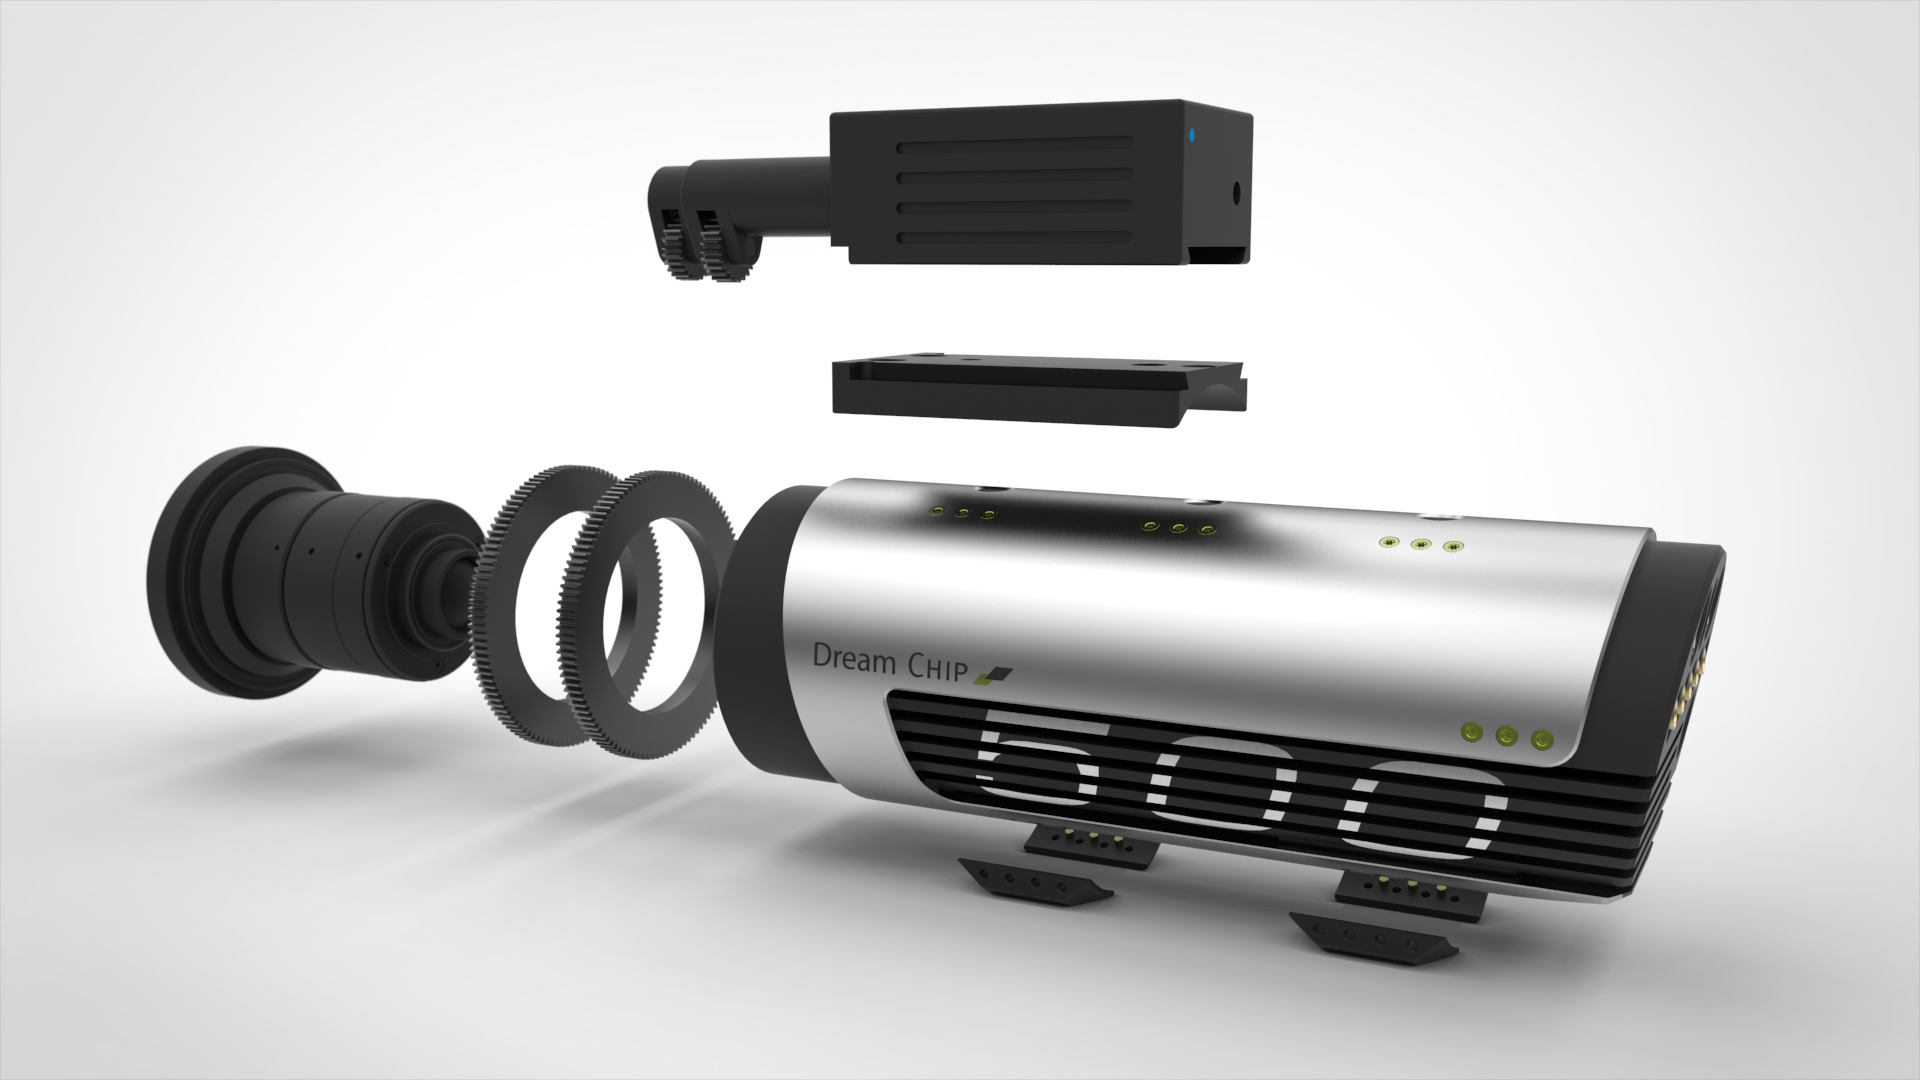 ATOM one SSM500 – a 400g camera that can capture up to 500fps